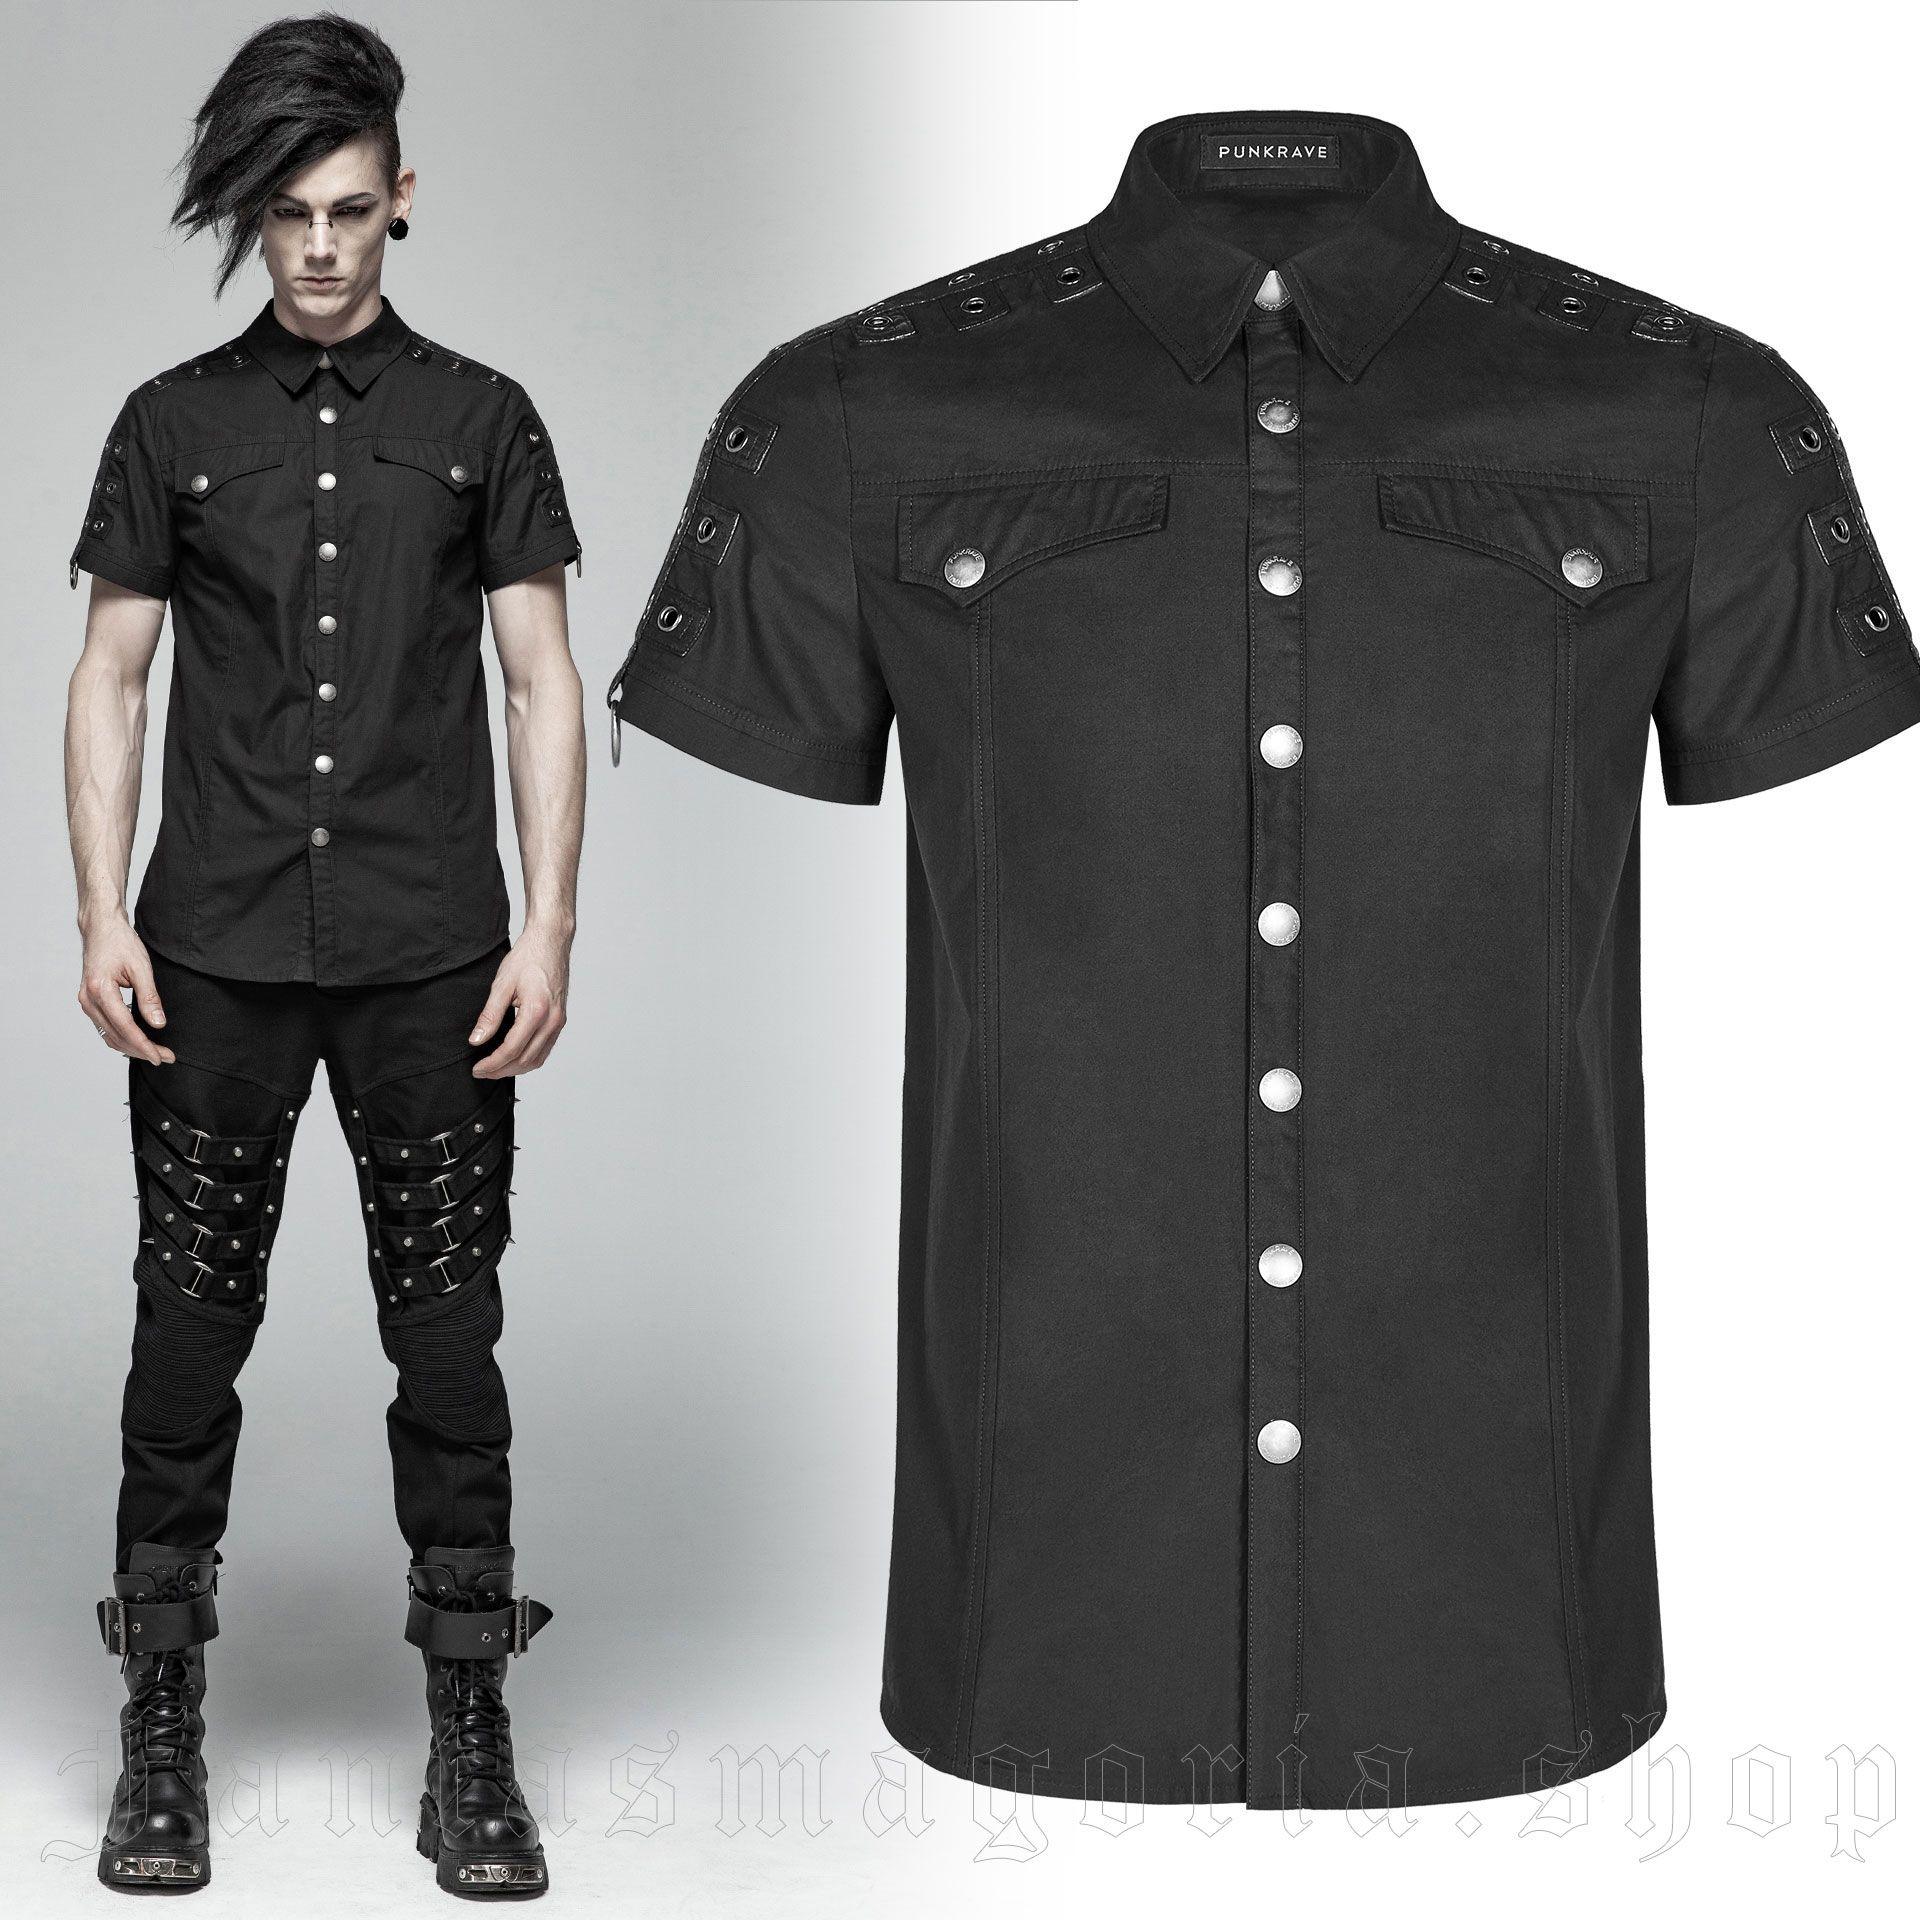 men's Marduk Shirt by PUNK RAVE brand, code: WY-1012